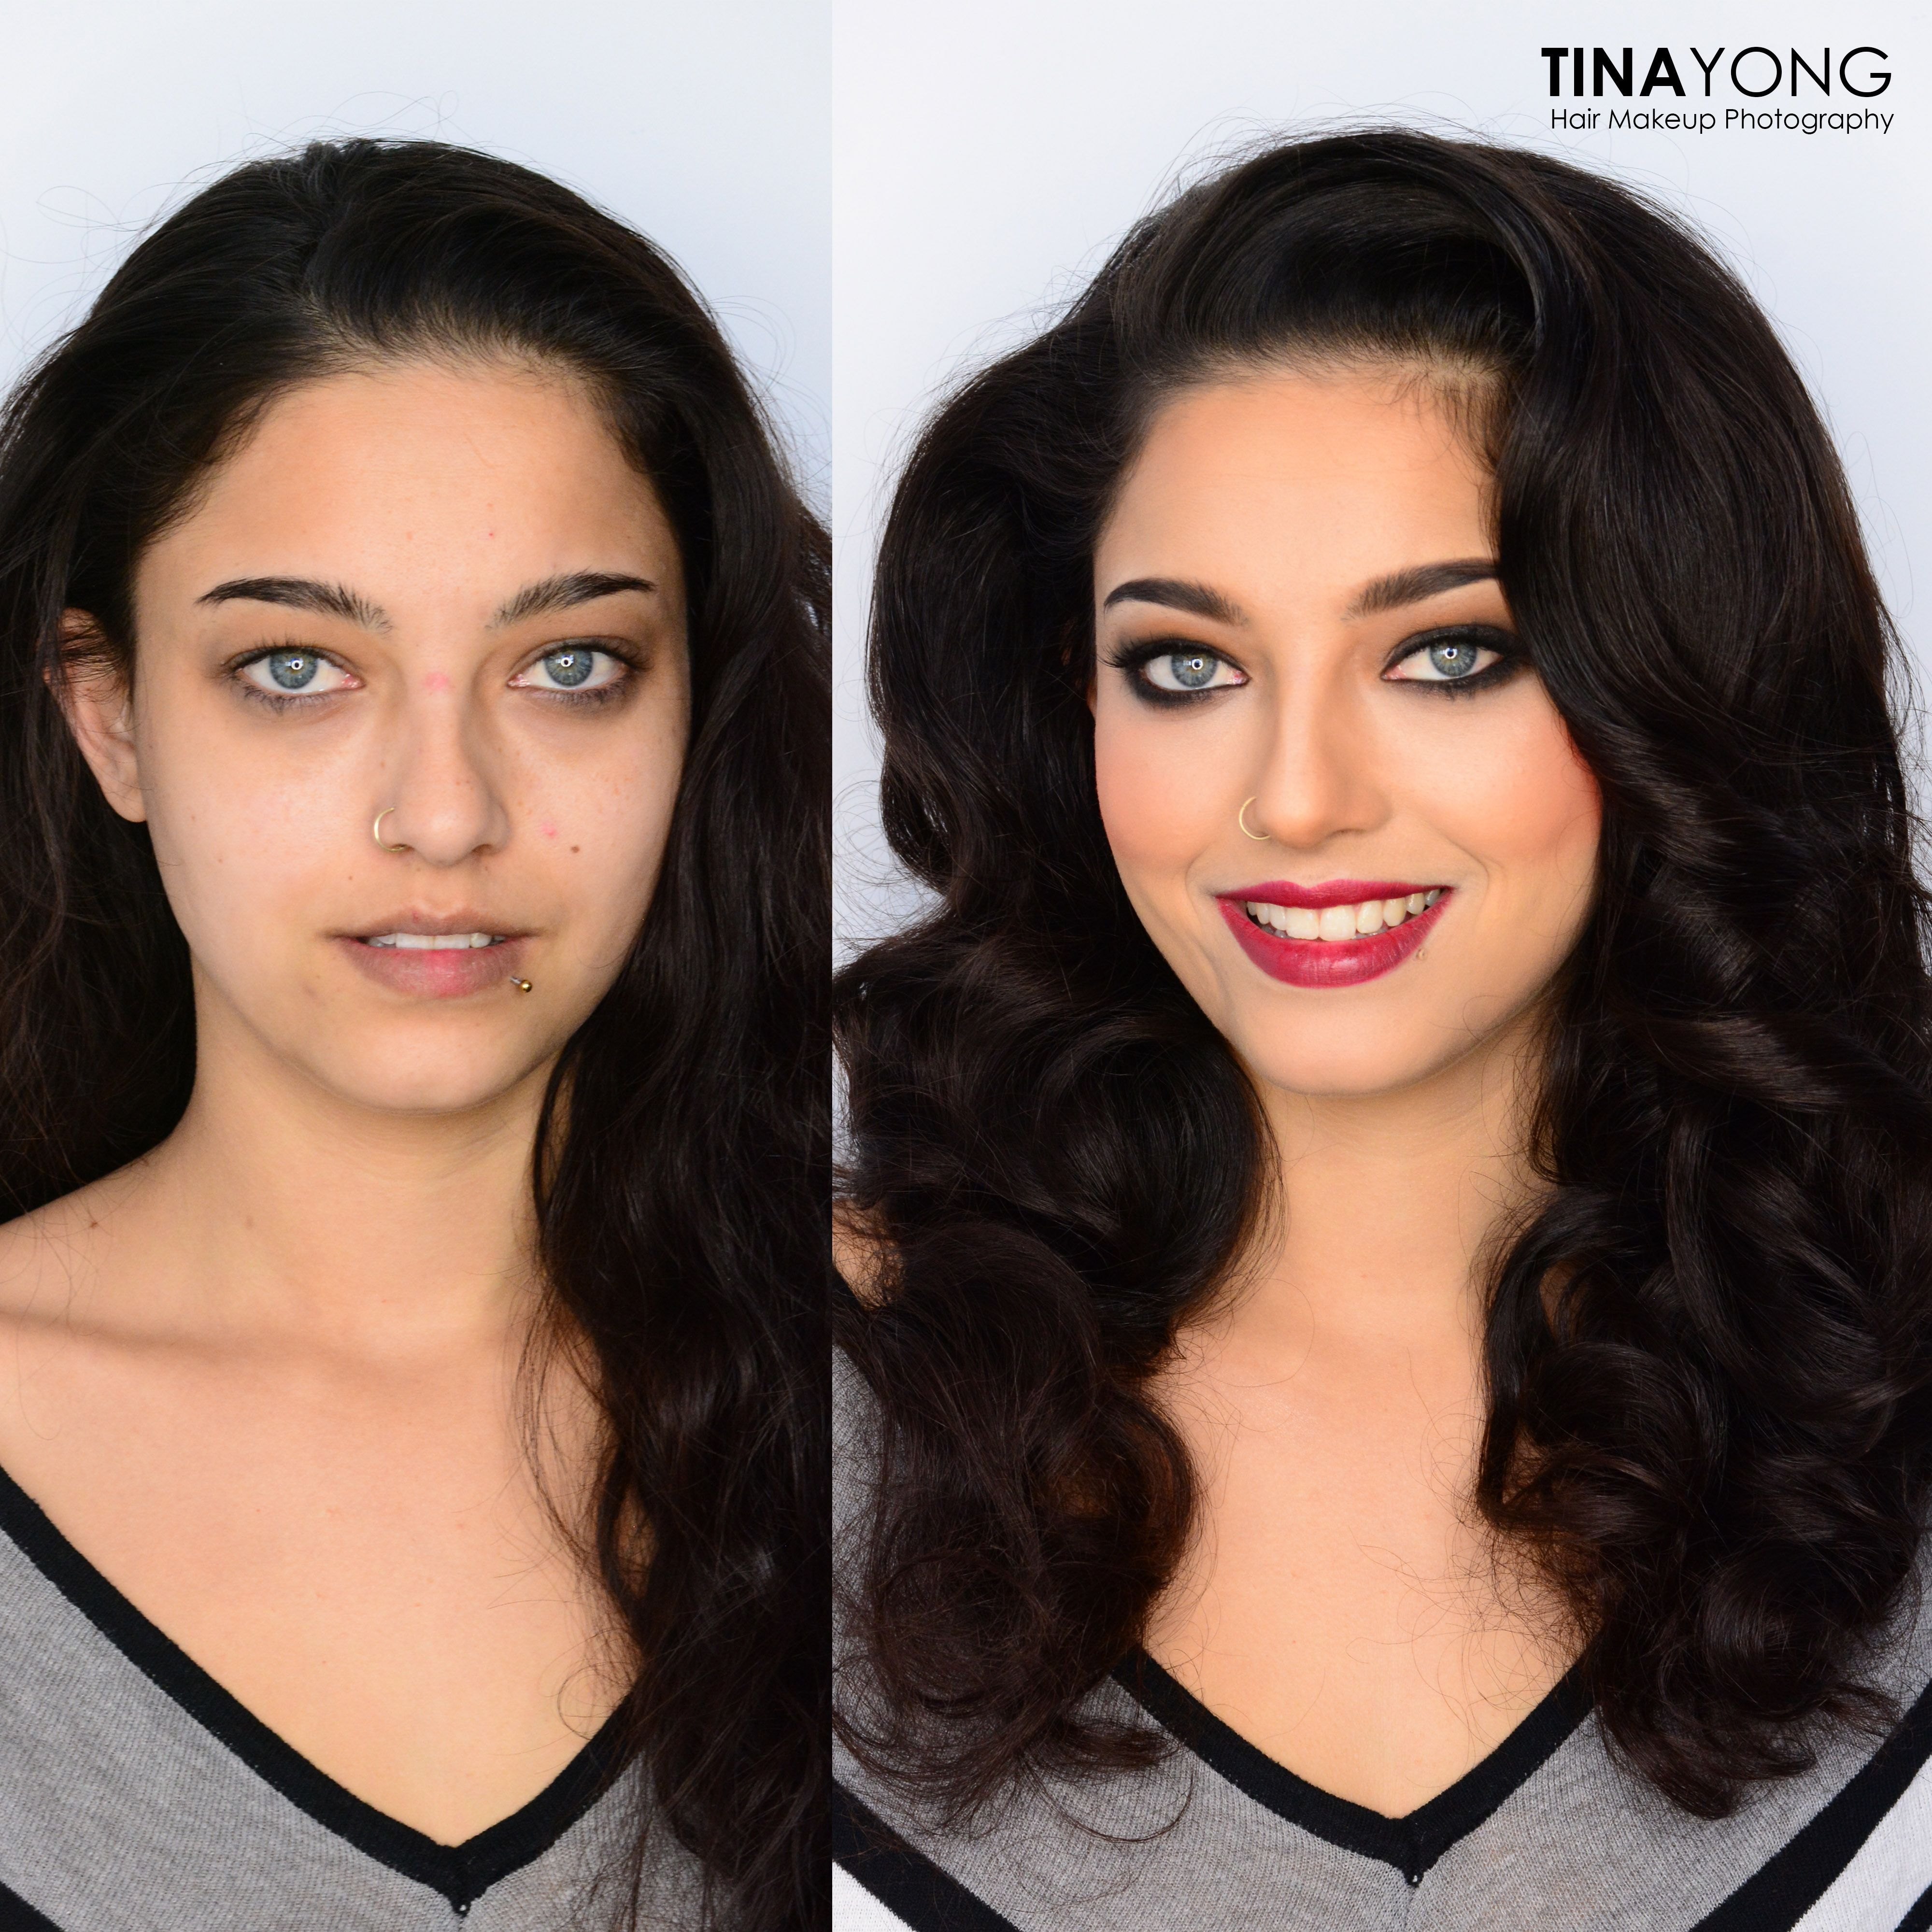 Before & After Makeup-Makeover #makeup #perfecteyes #prettygirlswag #glamour #smokeeyes #beatyourface #slayed #makeover